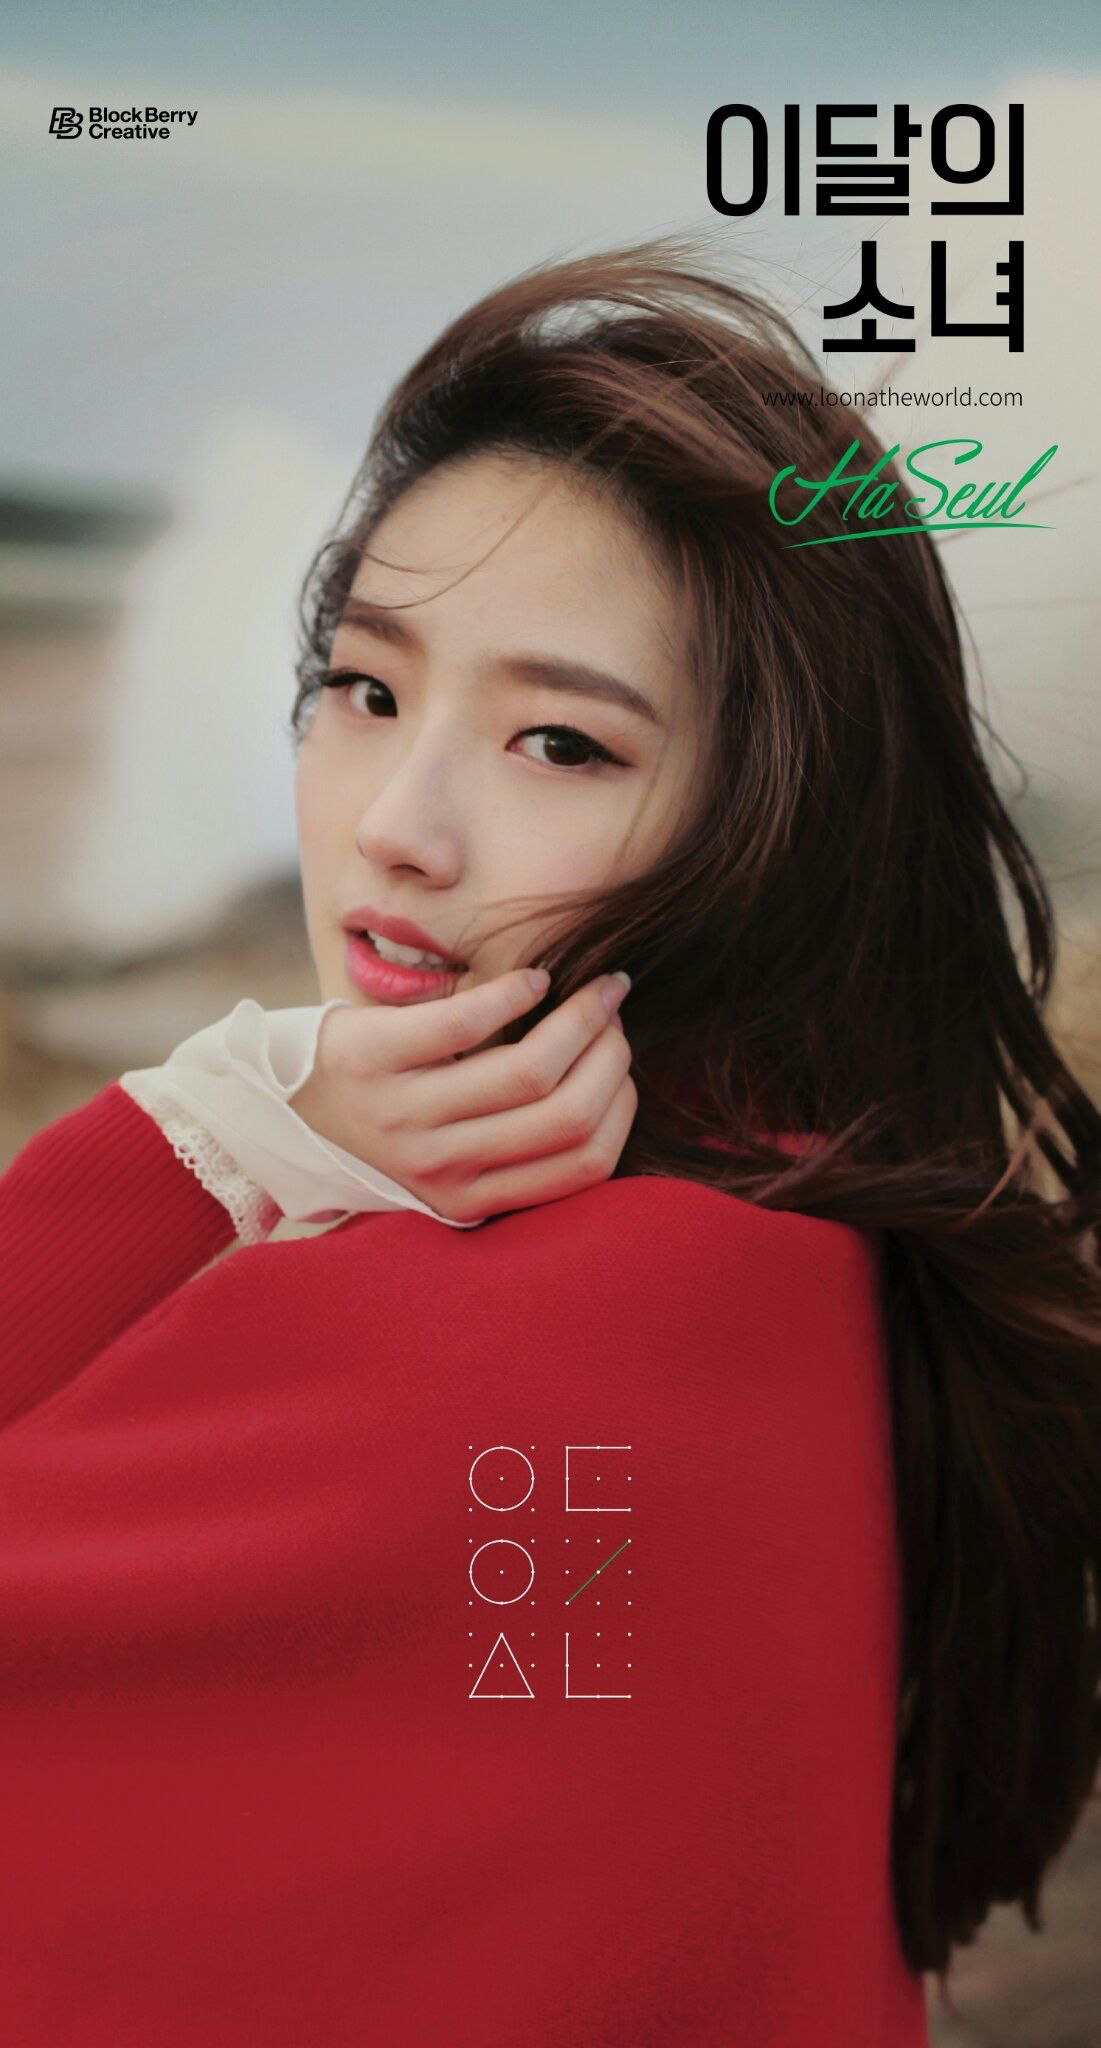 HaSeul debut photo 3.PNG